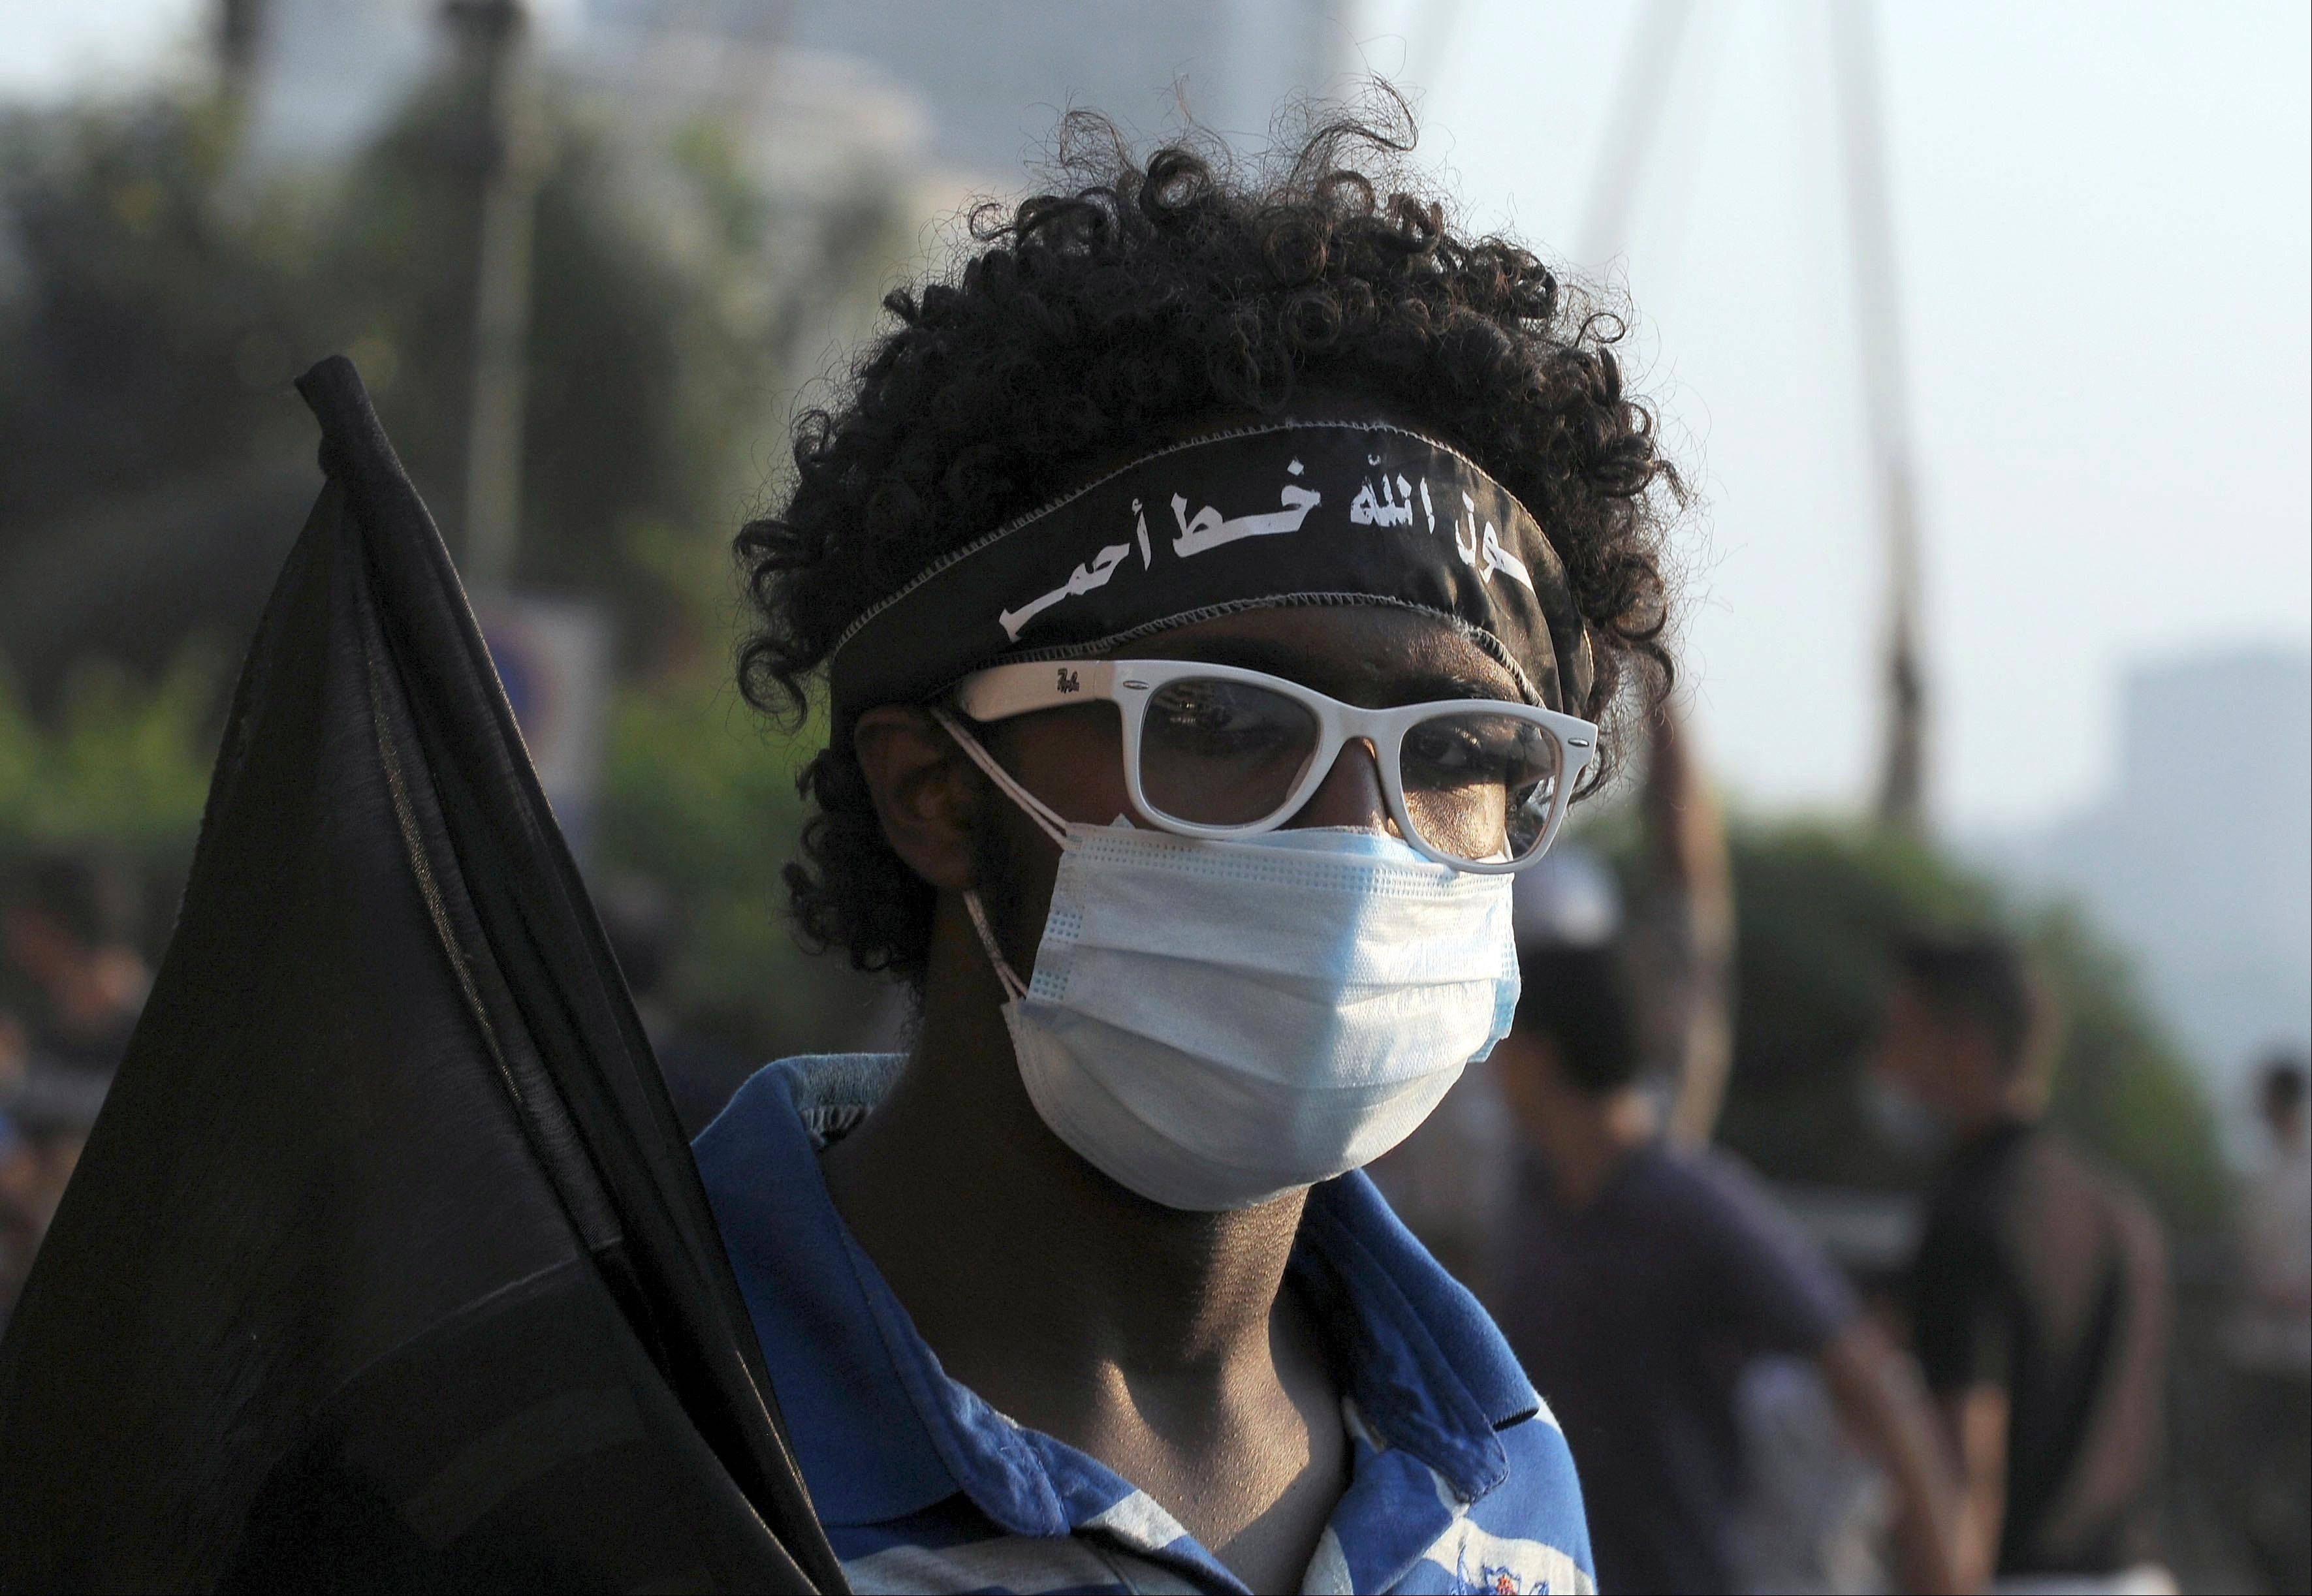 An Egyptian protester covers his face Friday during clashes with security forces near the U.S. embassy in Cairo.